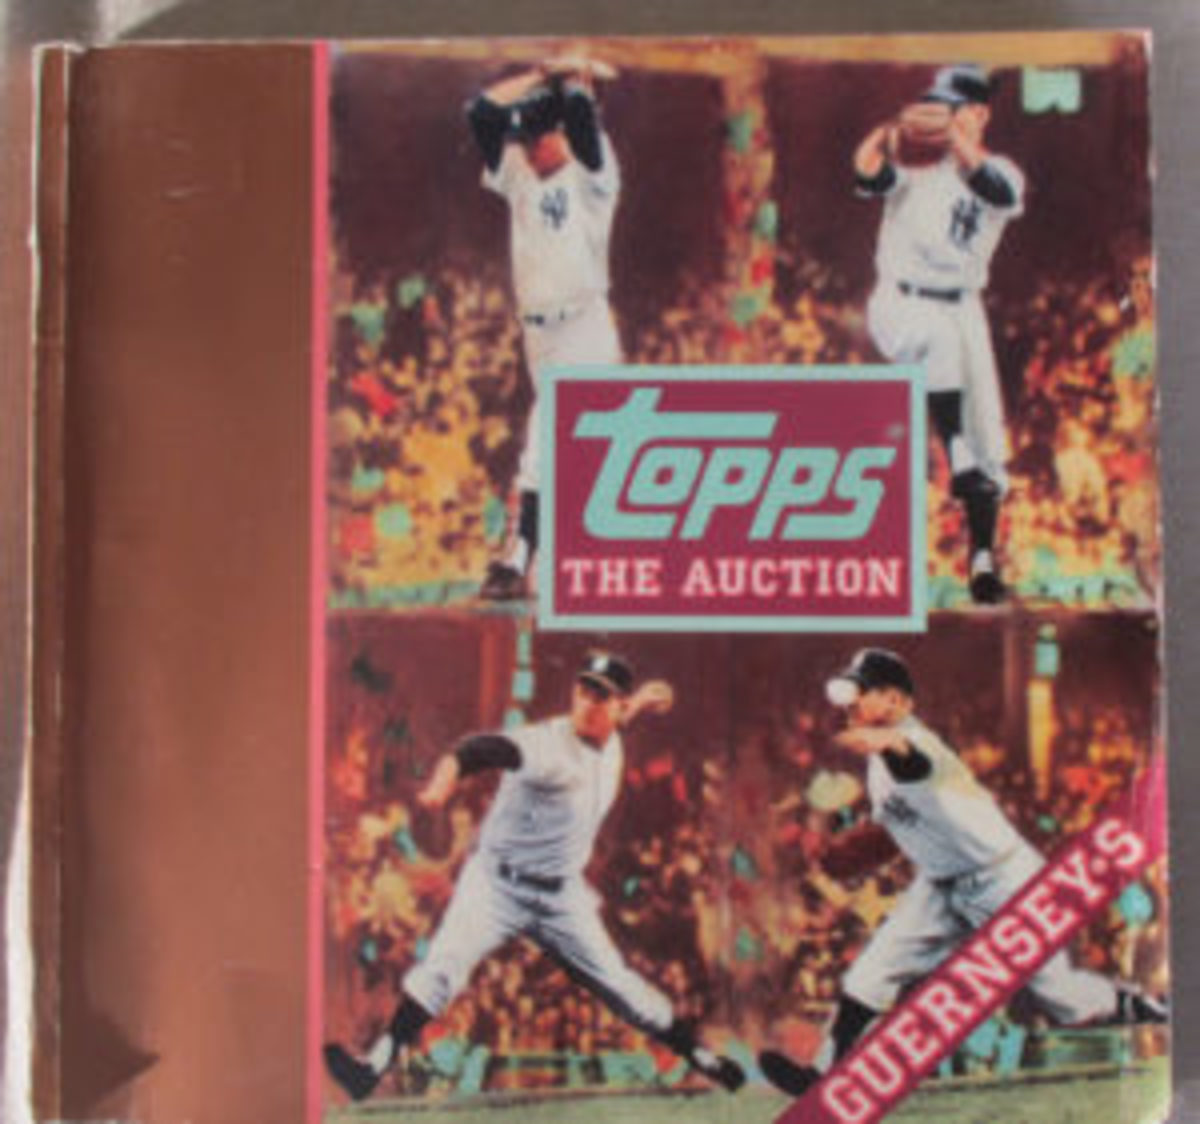 The catalog from the 1989 auction hosted by Guernsey's.